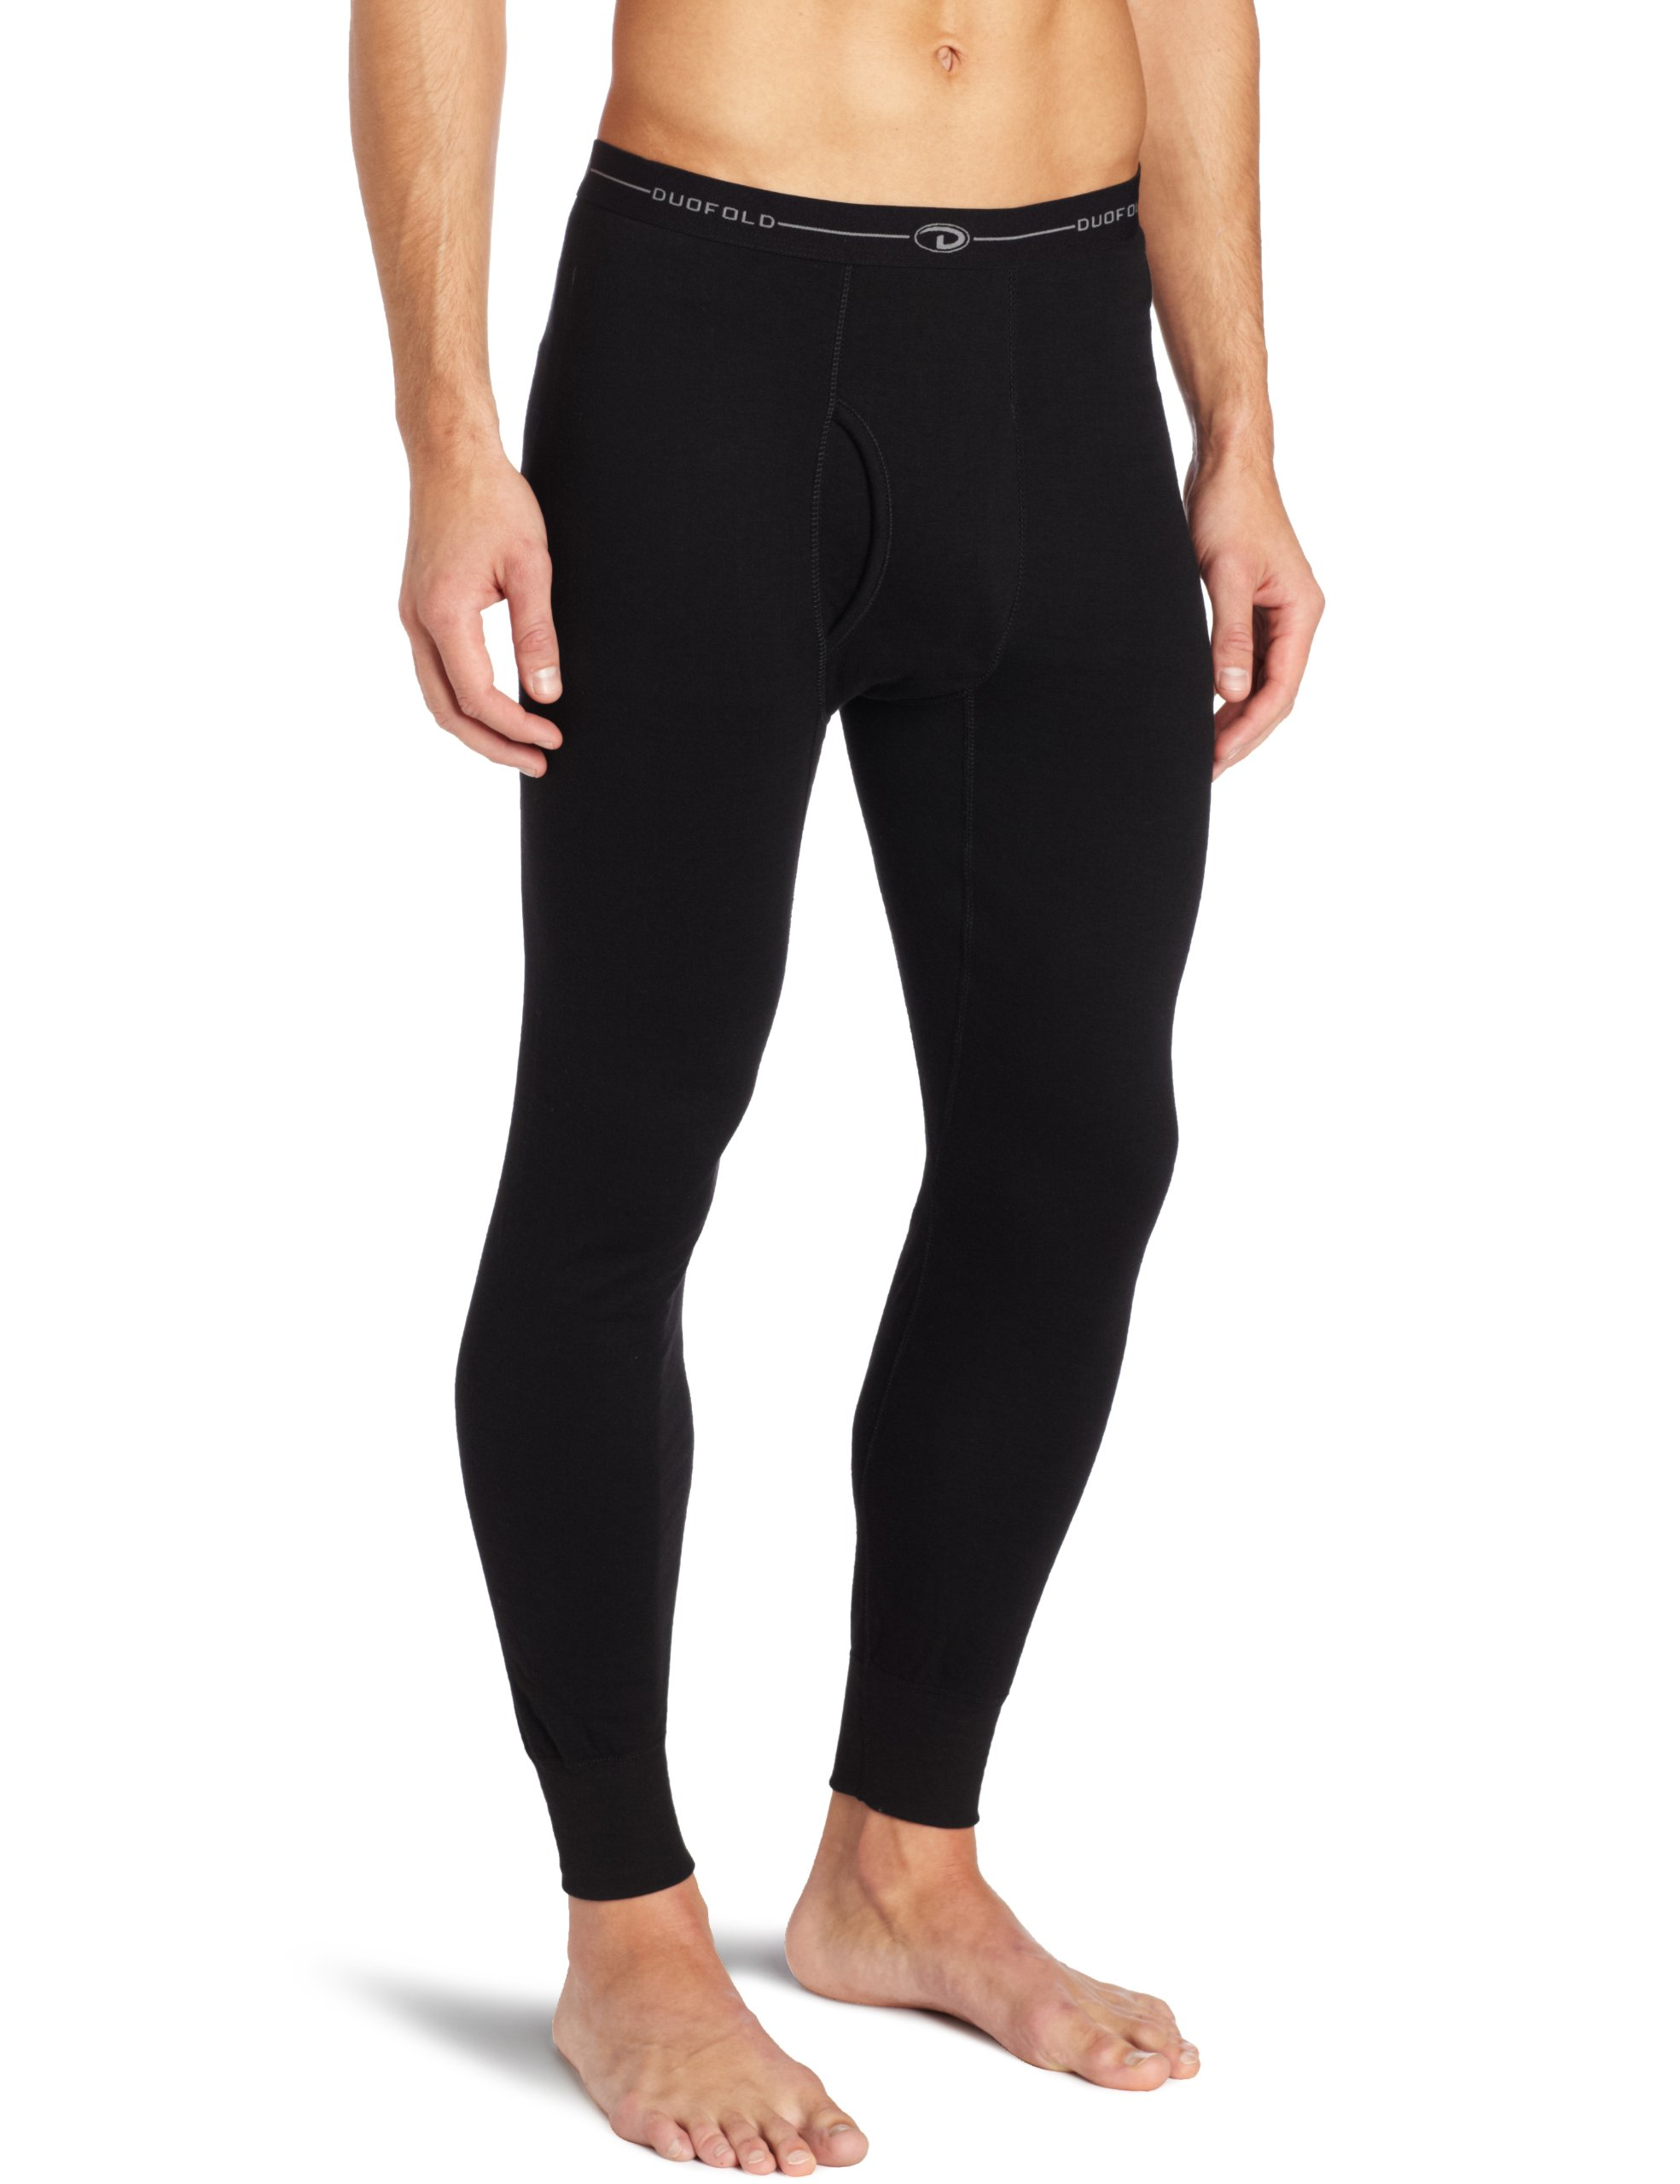 Duofold Men's Mid Weight Wicking Thermal Pant, Black, Medium by Duofold